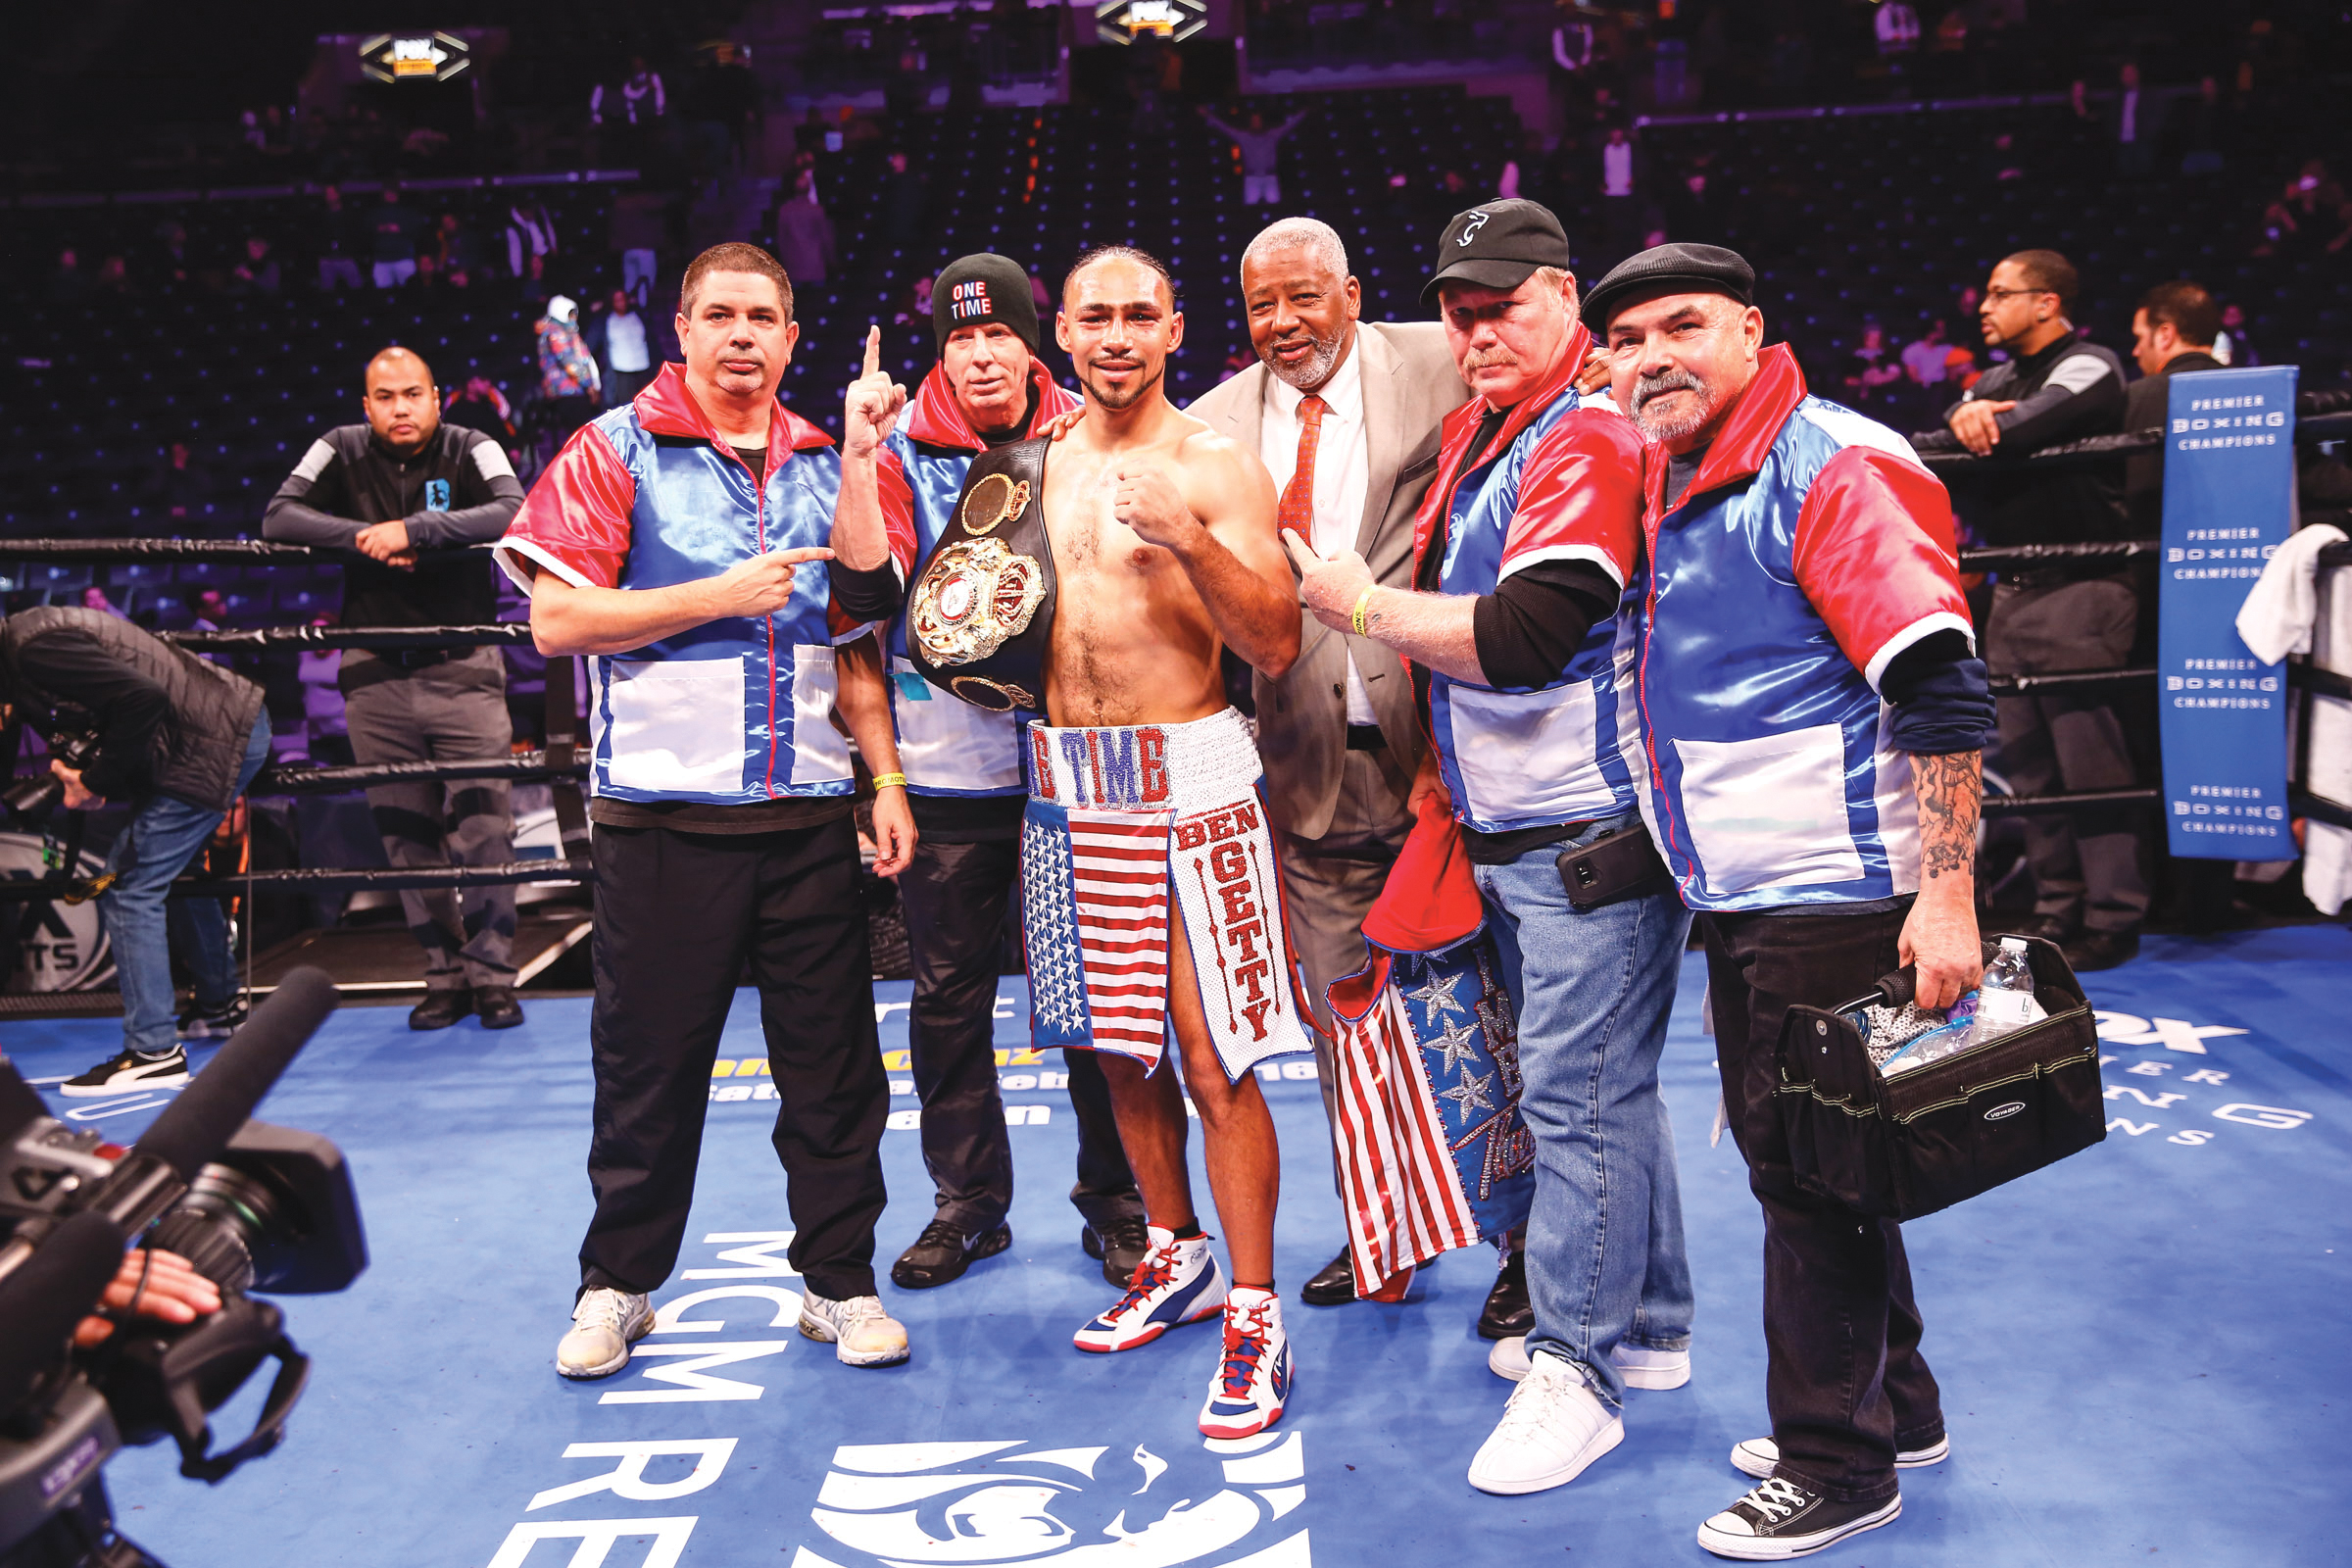 Team Thurman celebrate after their victory over Lopez on Saturday at Barclays Center in Brooklyn, NY. (Photo Credit to Stephanie Trapp/ TGB Promotions)